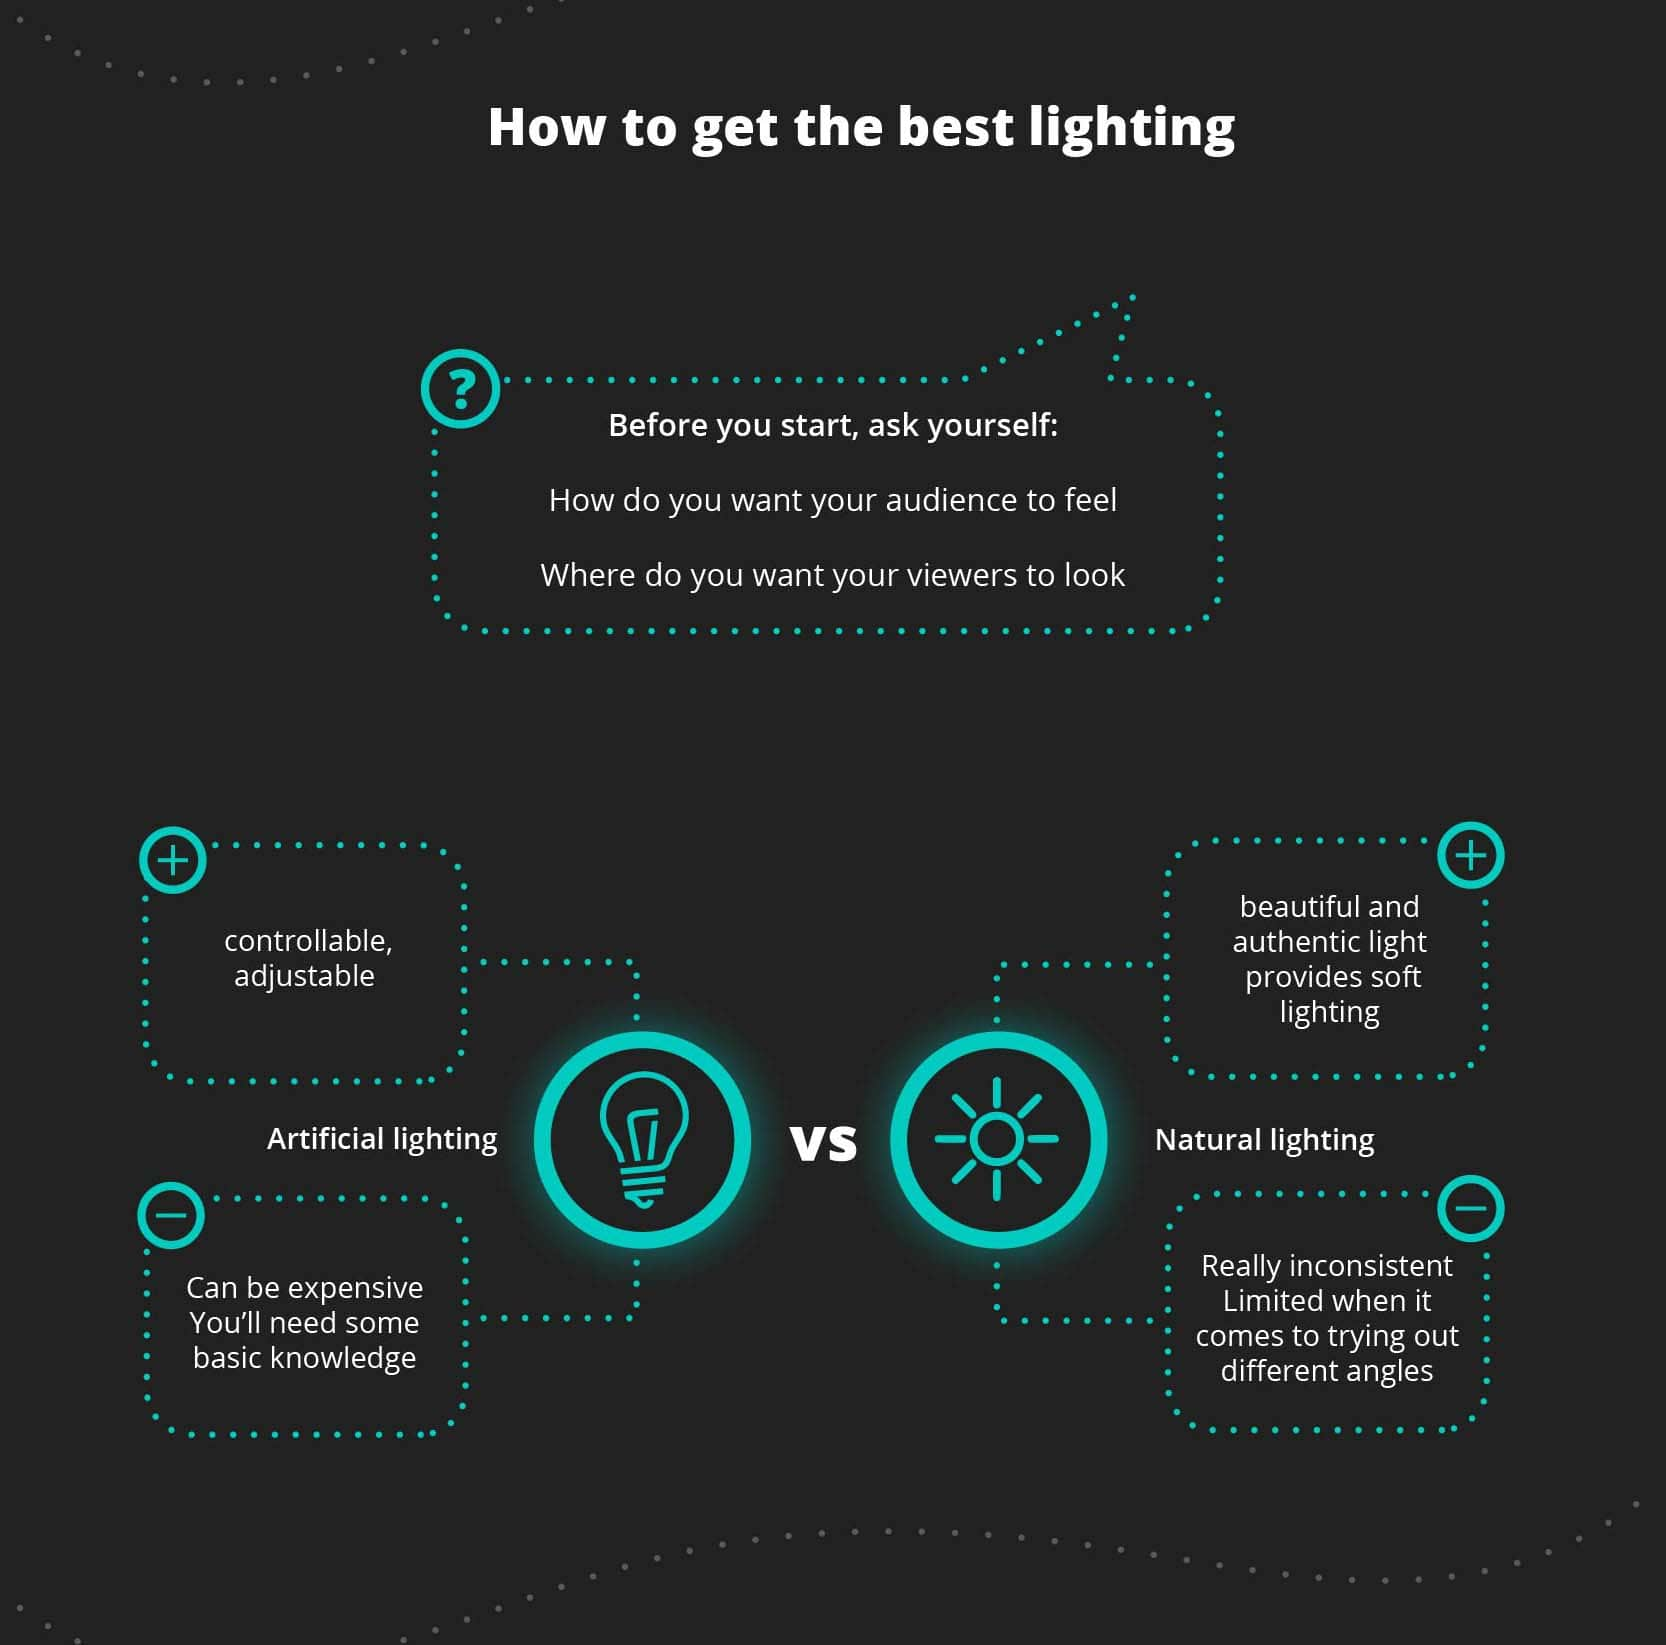 How to get the best lighting, what do you need to think of before getting started, natural lighting vs. artificial lighting